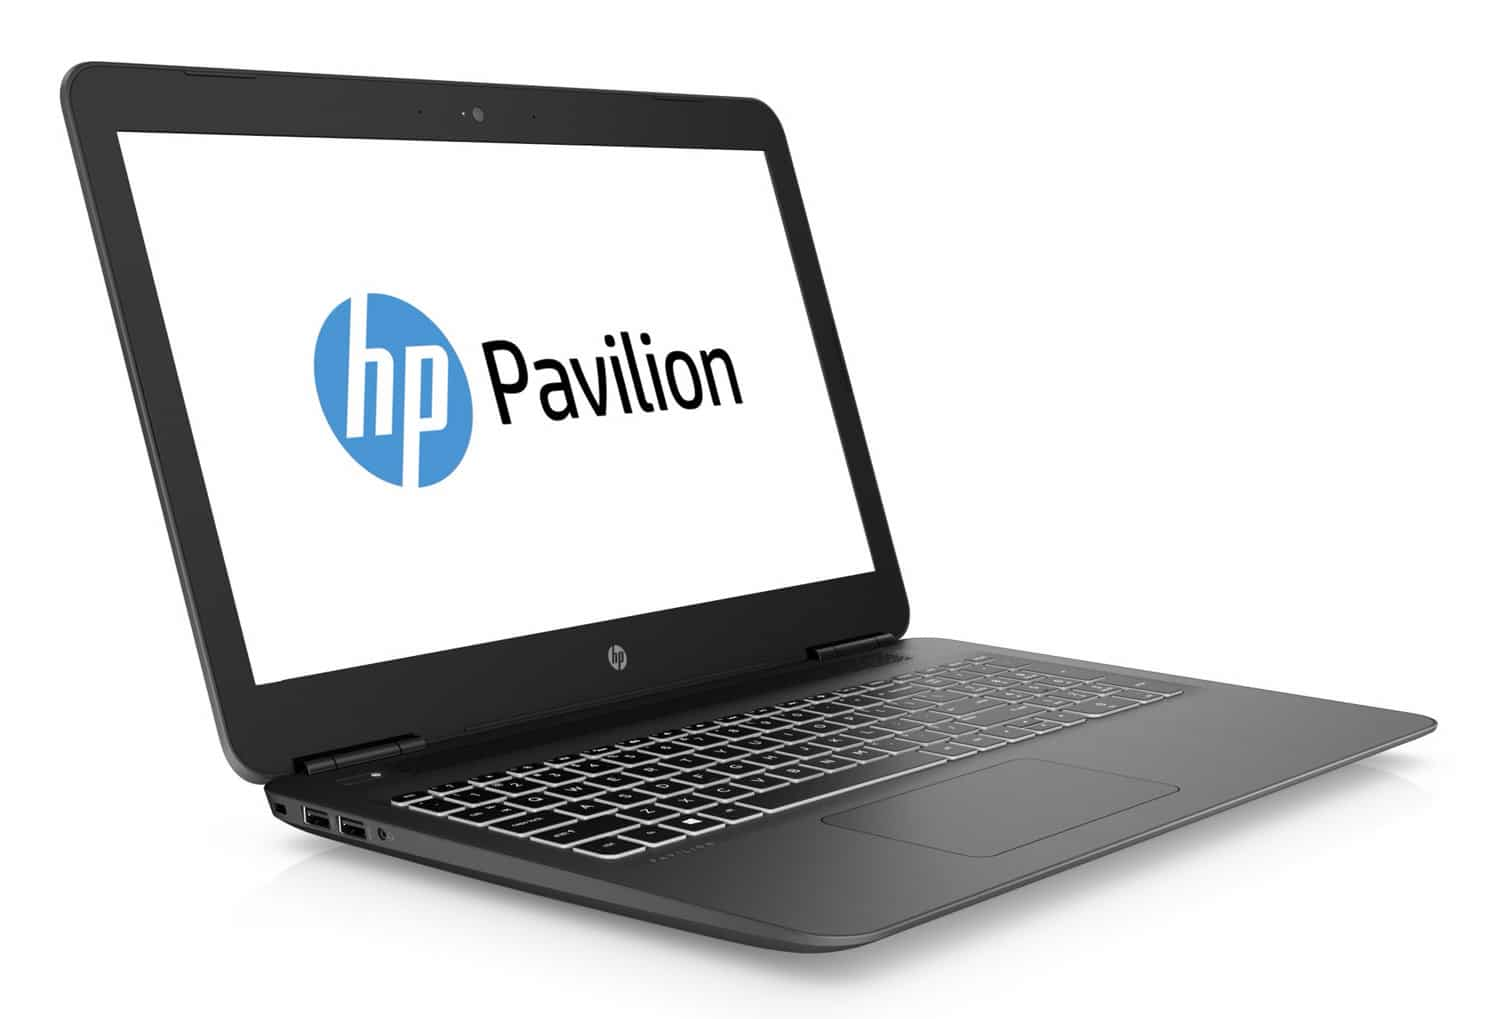 HP Pavilion 15-bc313nf, PC portable 15 pouces Full i5 SSD GTX (-70€) (569€)